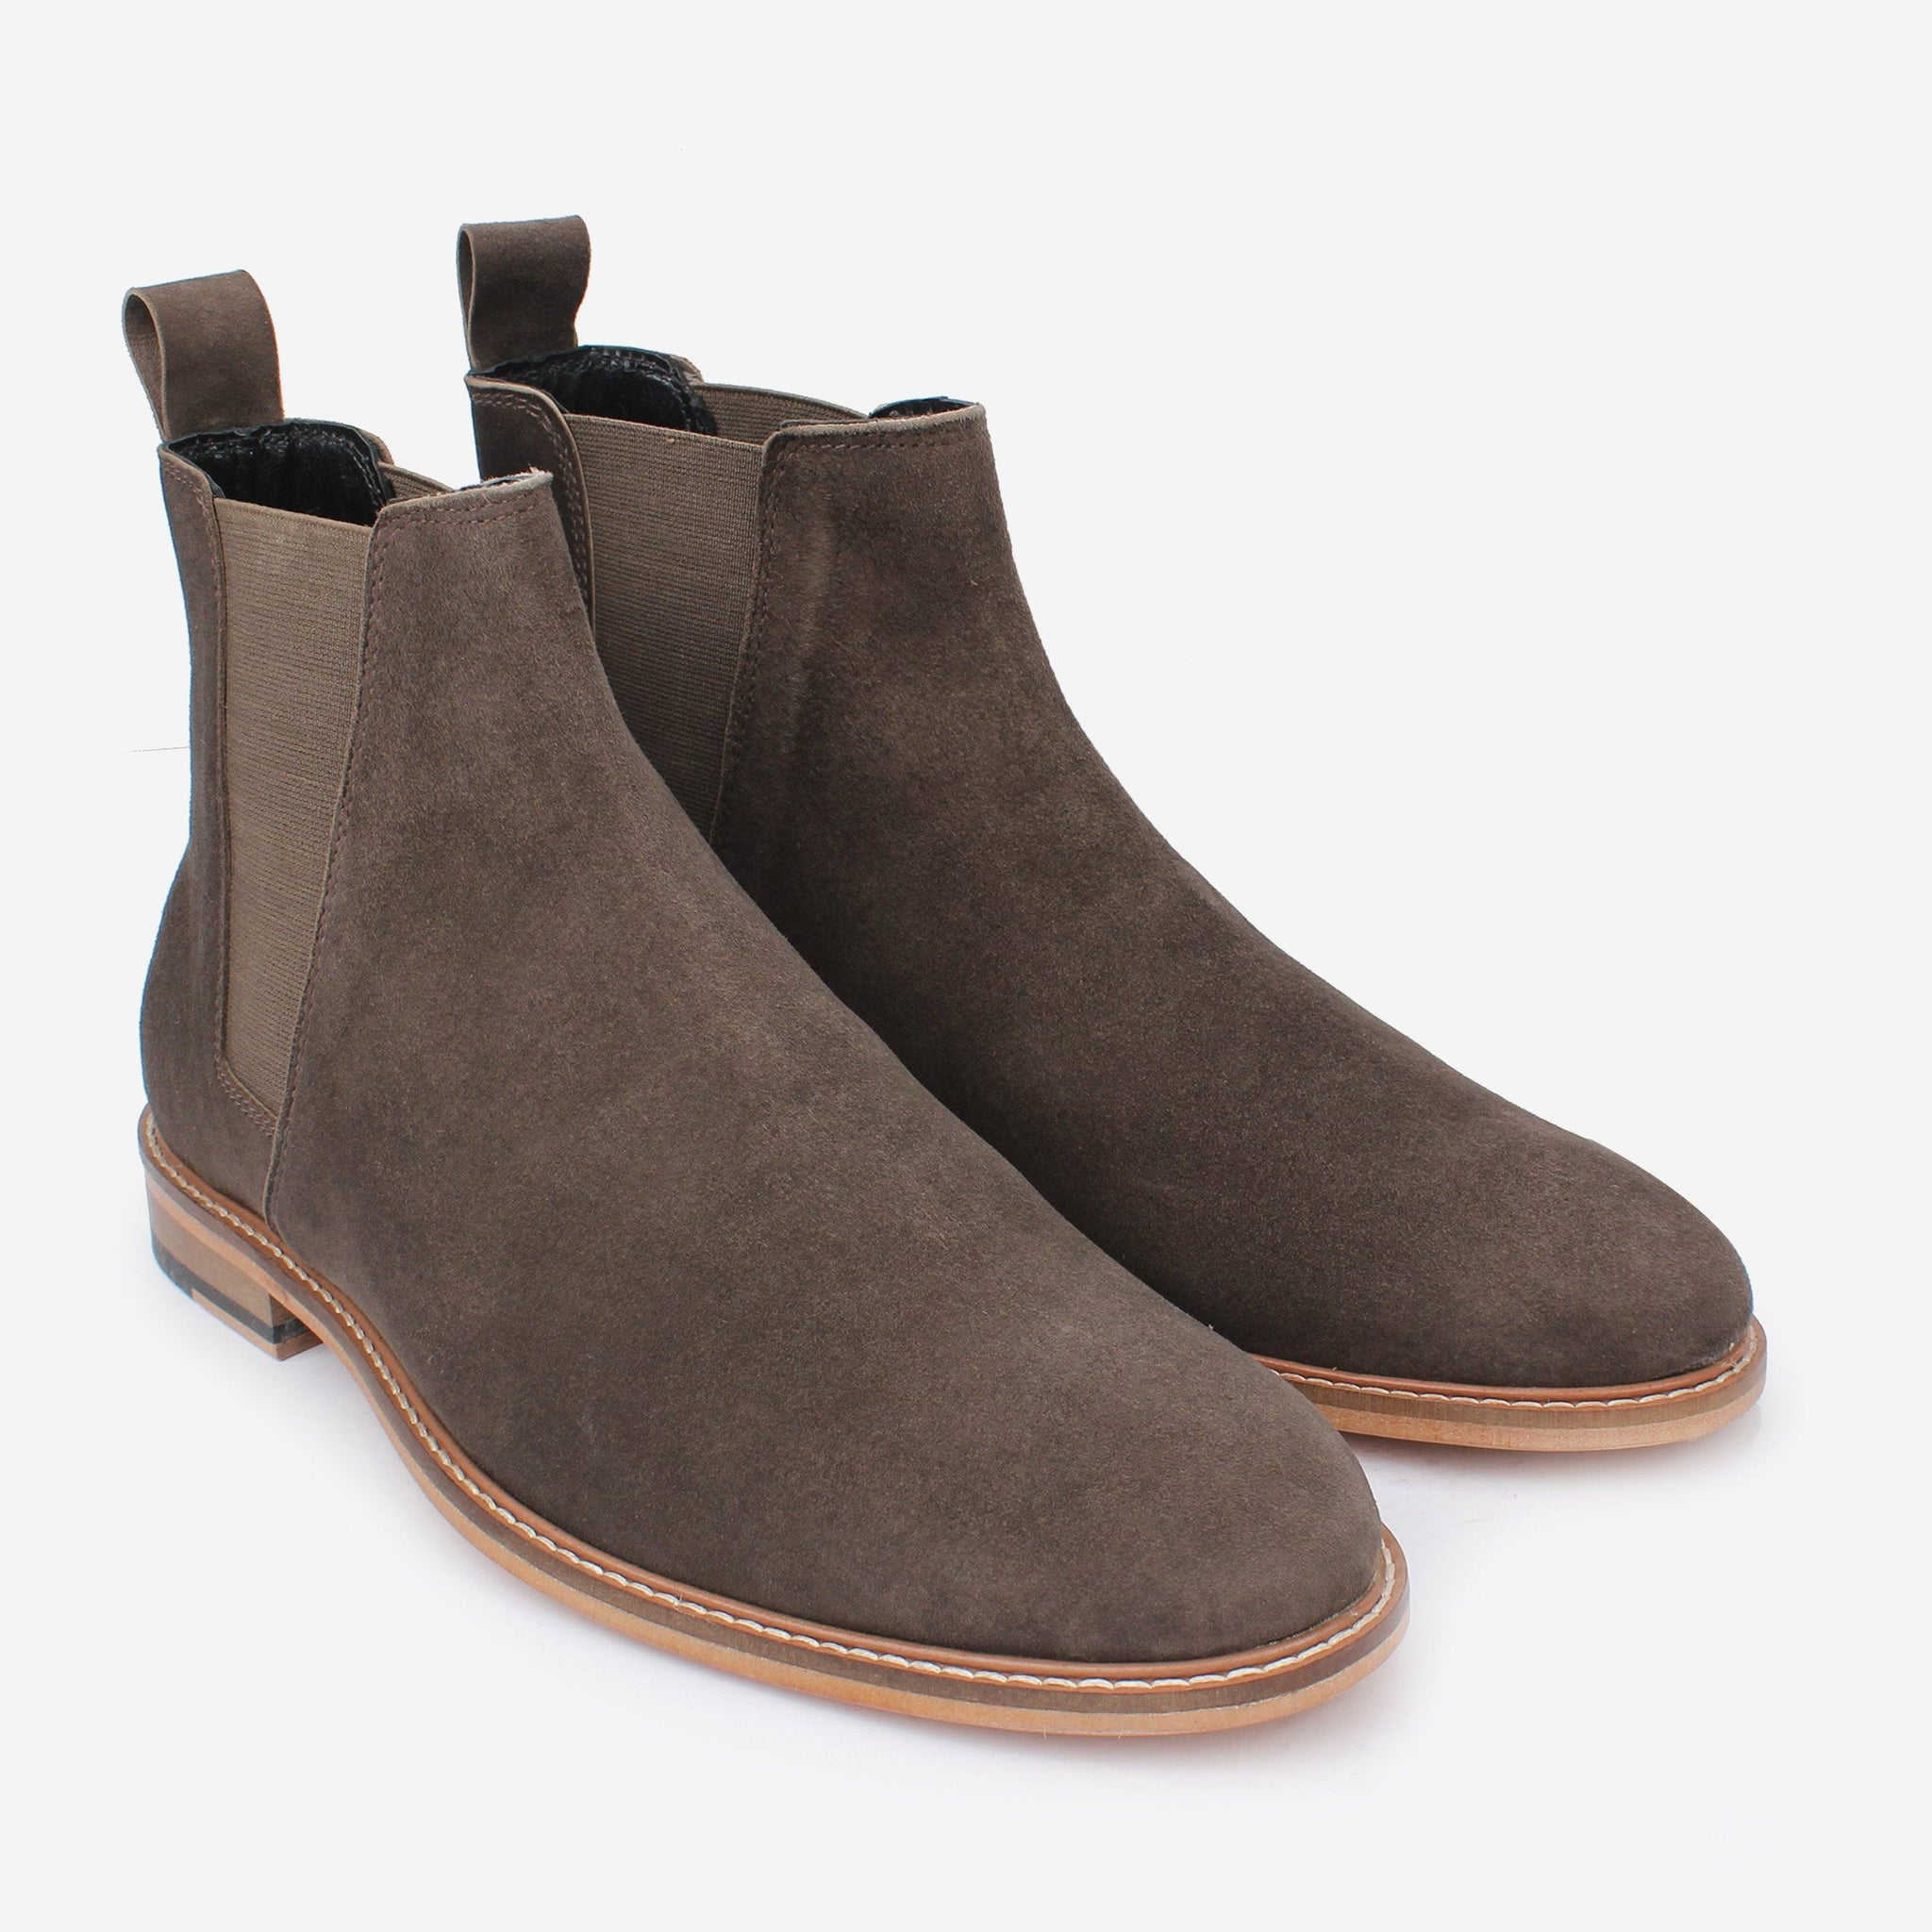 Pluto Boot Grey Thebootsco